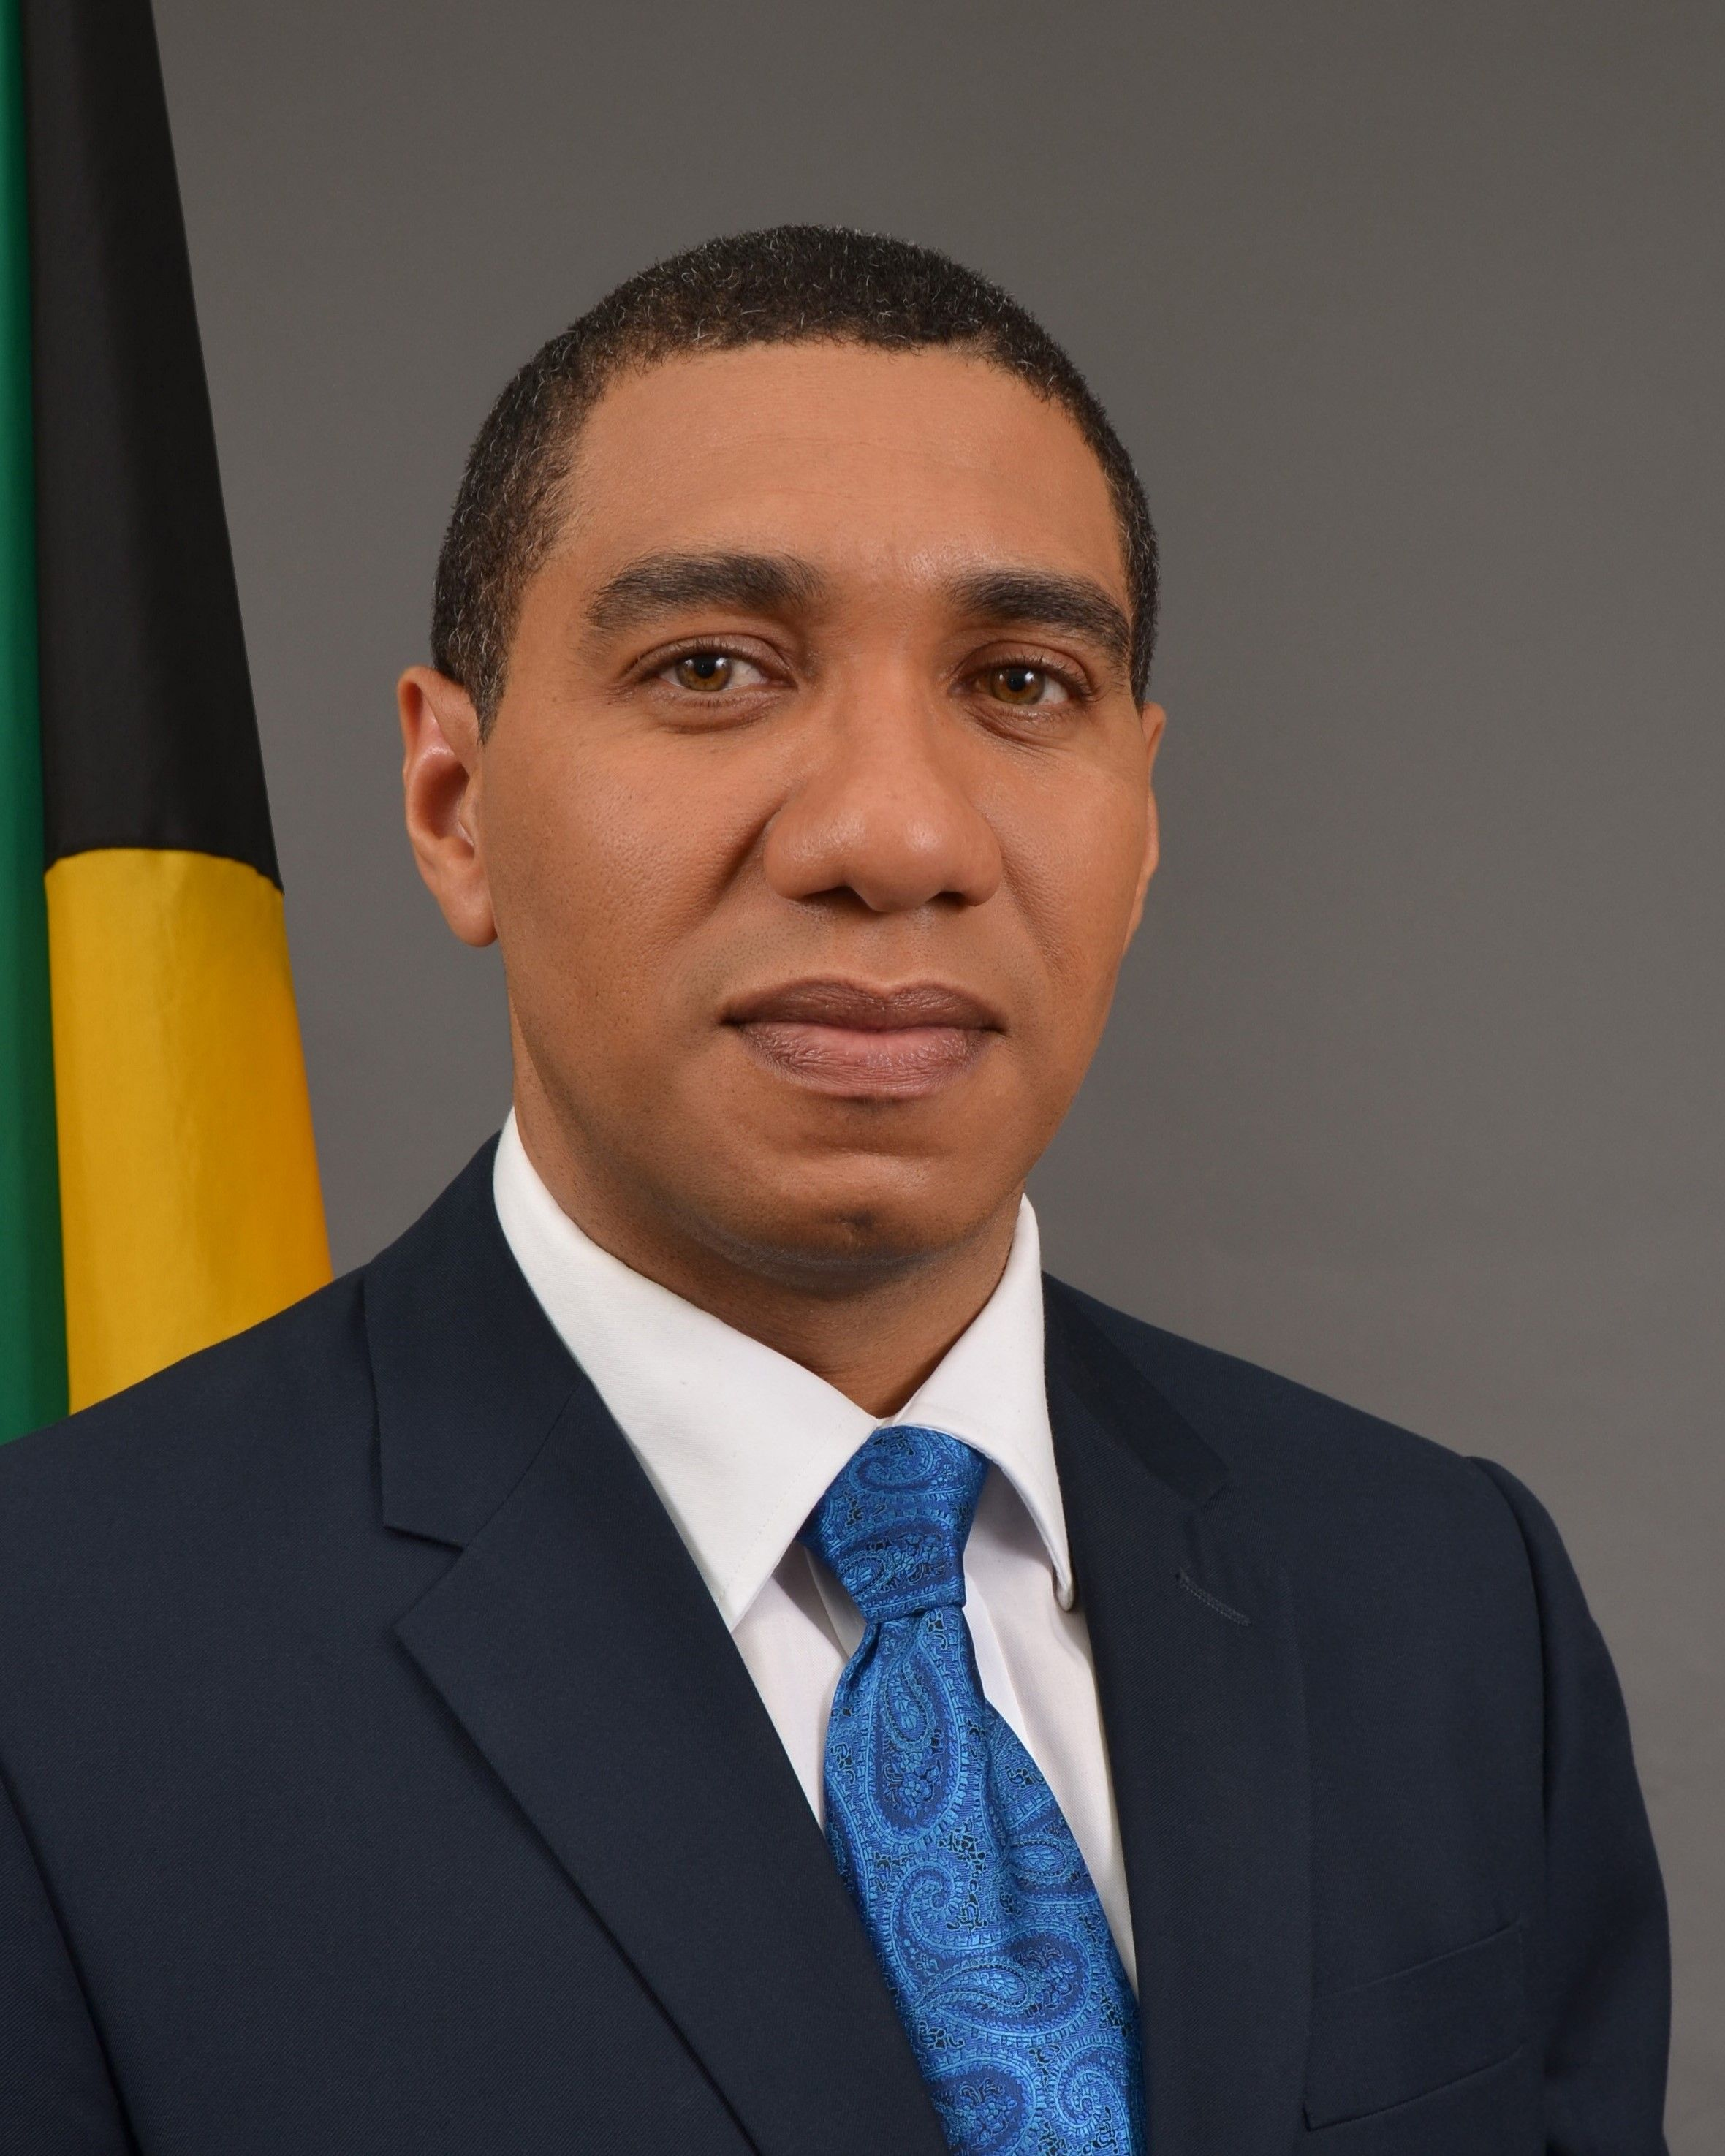 This Is A Picture Of Jamaica's Prime Minister Andrew Holness